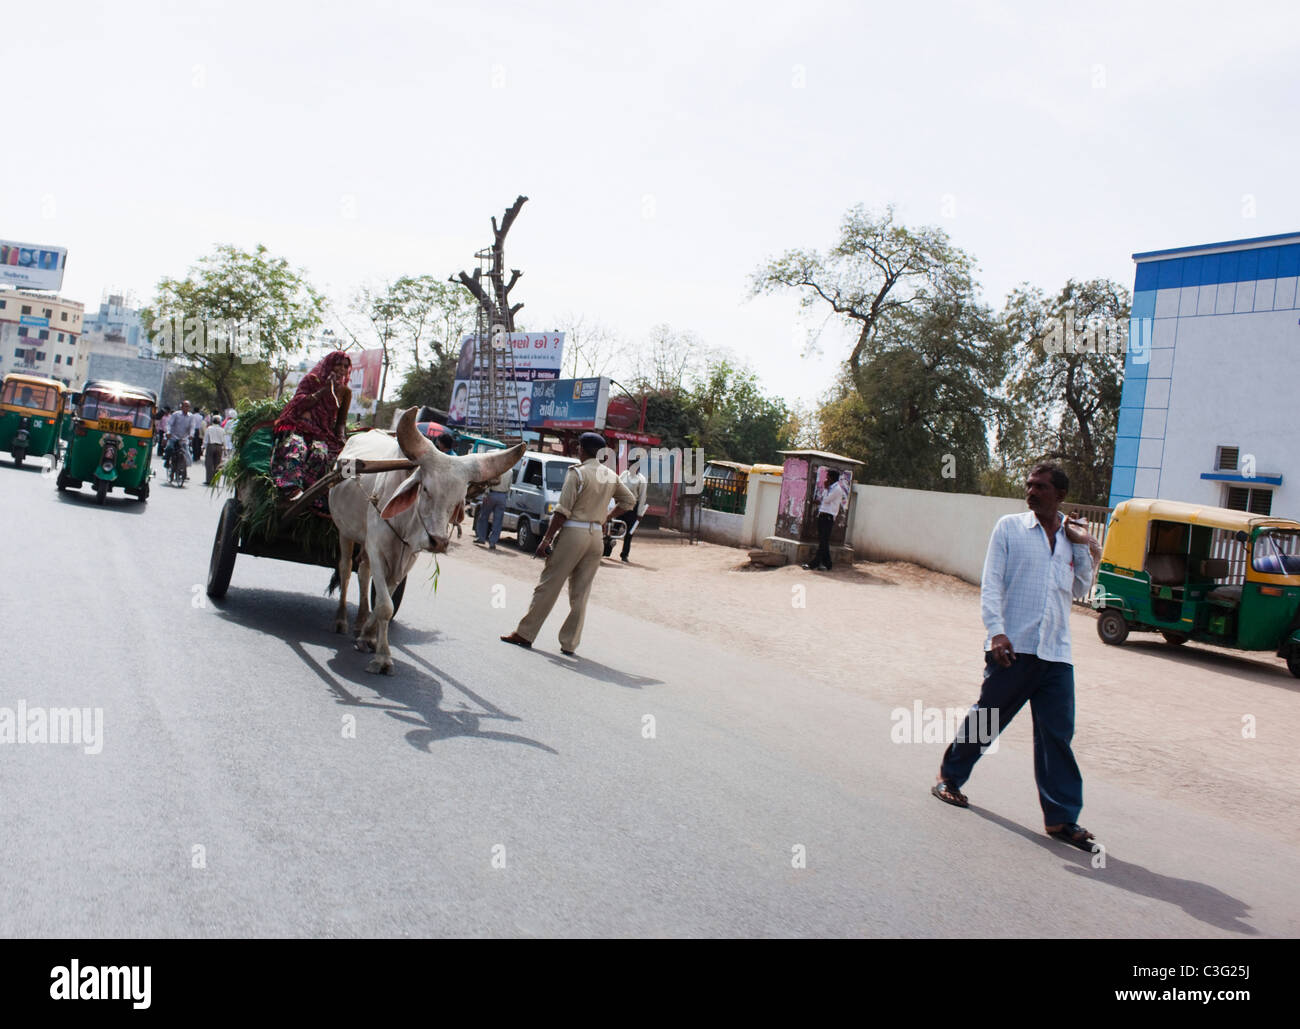 Traffic on a road in a city, Ahmedabad, Gujarat, India - Stock Image